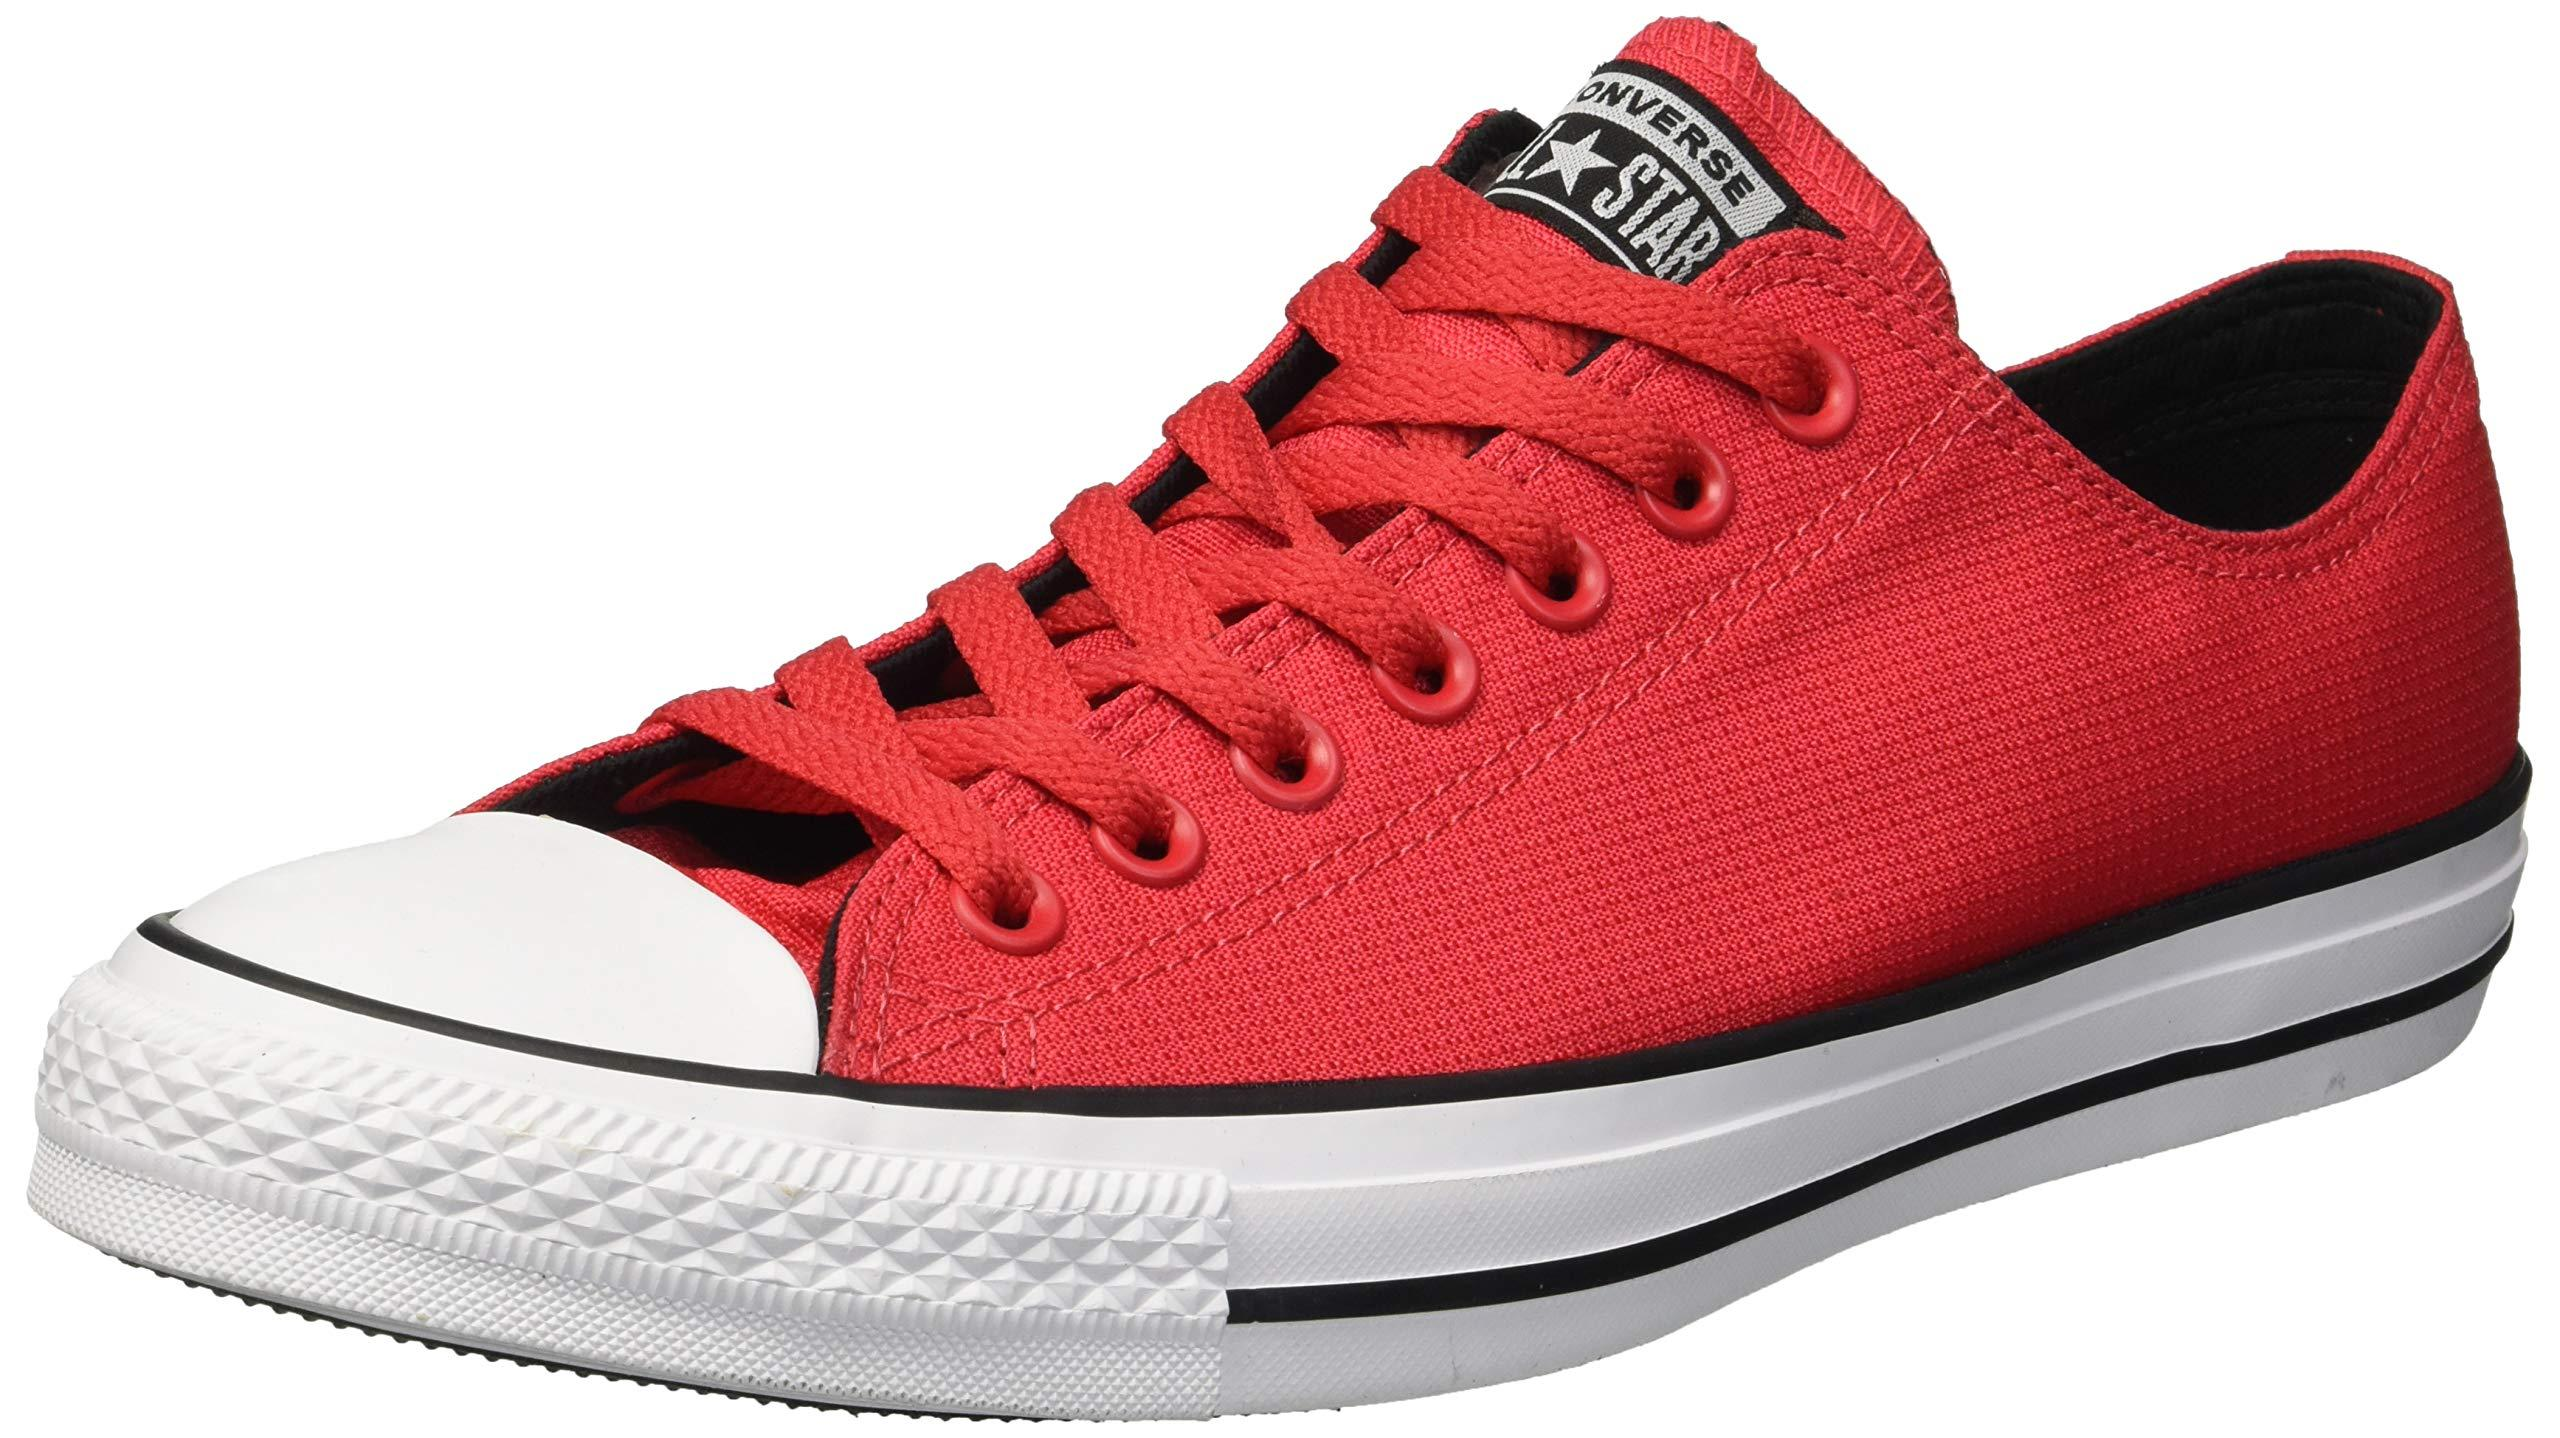 Chuck Taylor All Star Lightweight Nylon Low Top Sneaker